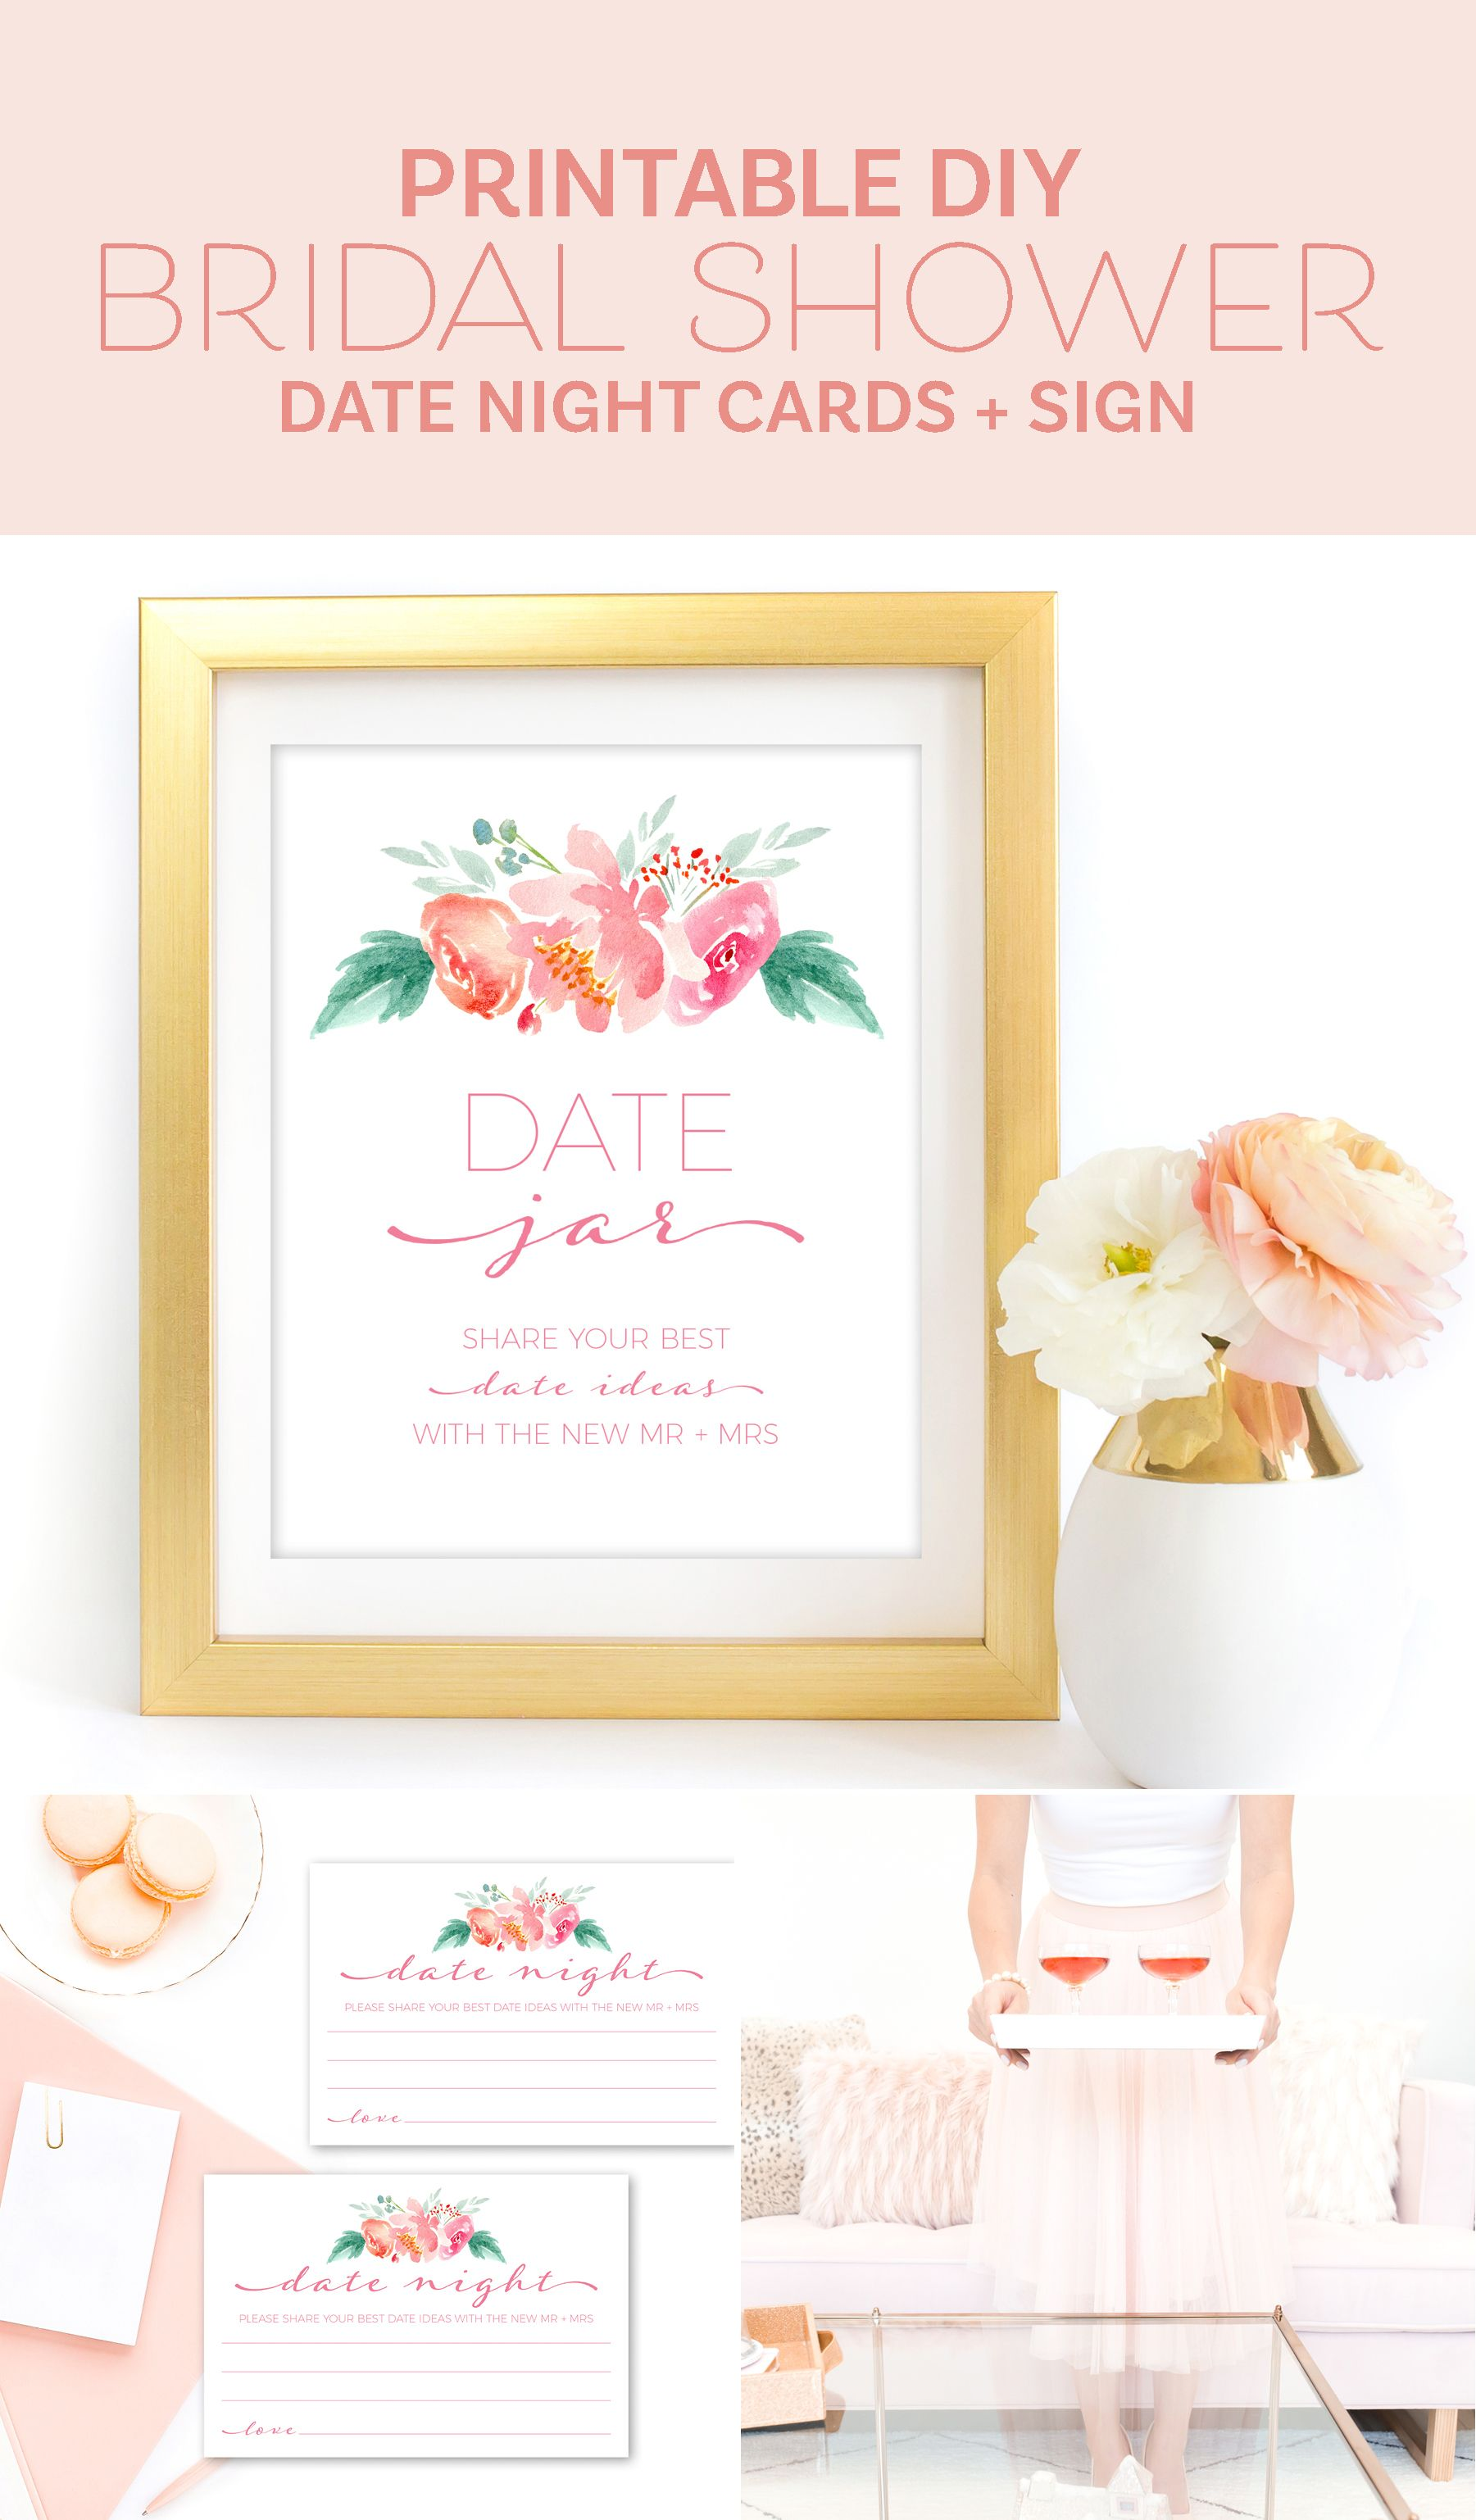 Bridal Shower Date Jar Sign and Date Night Cards - Printable